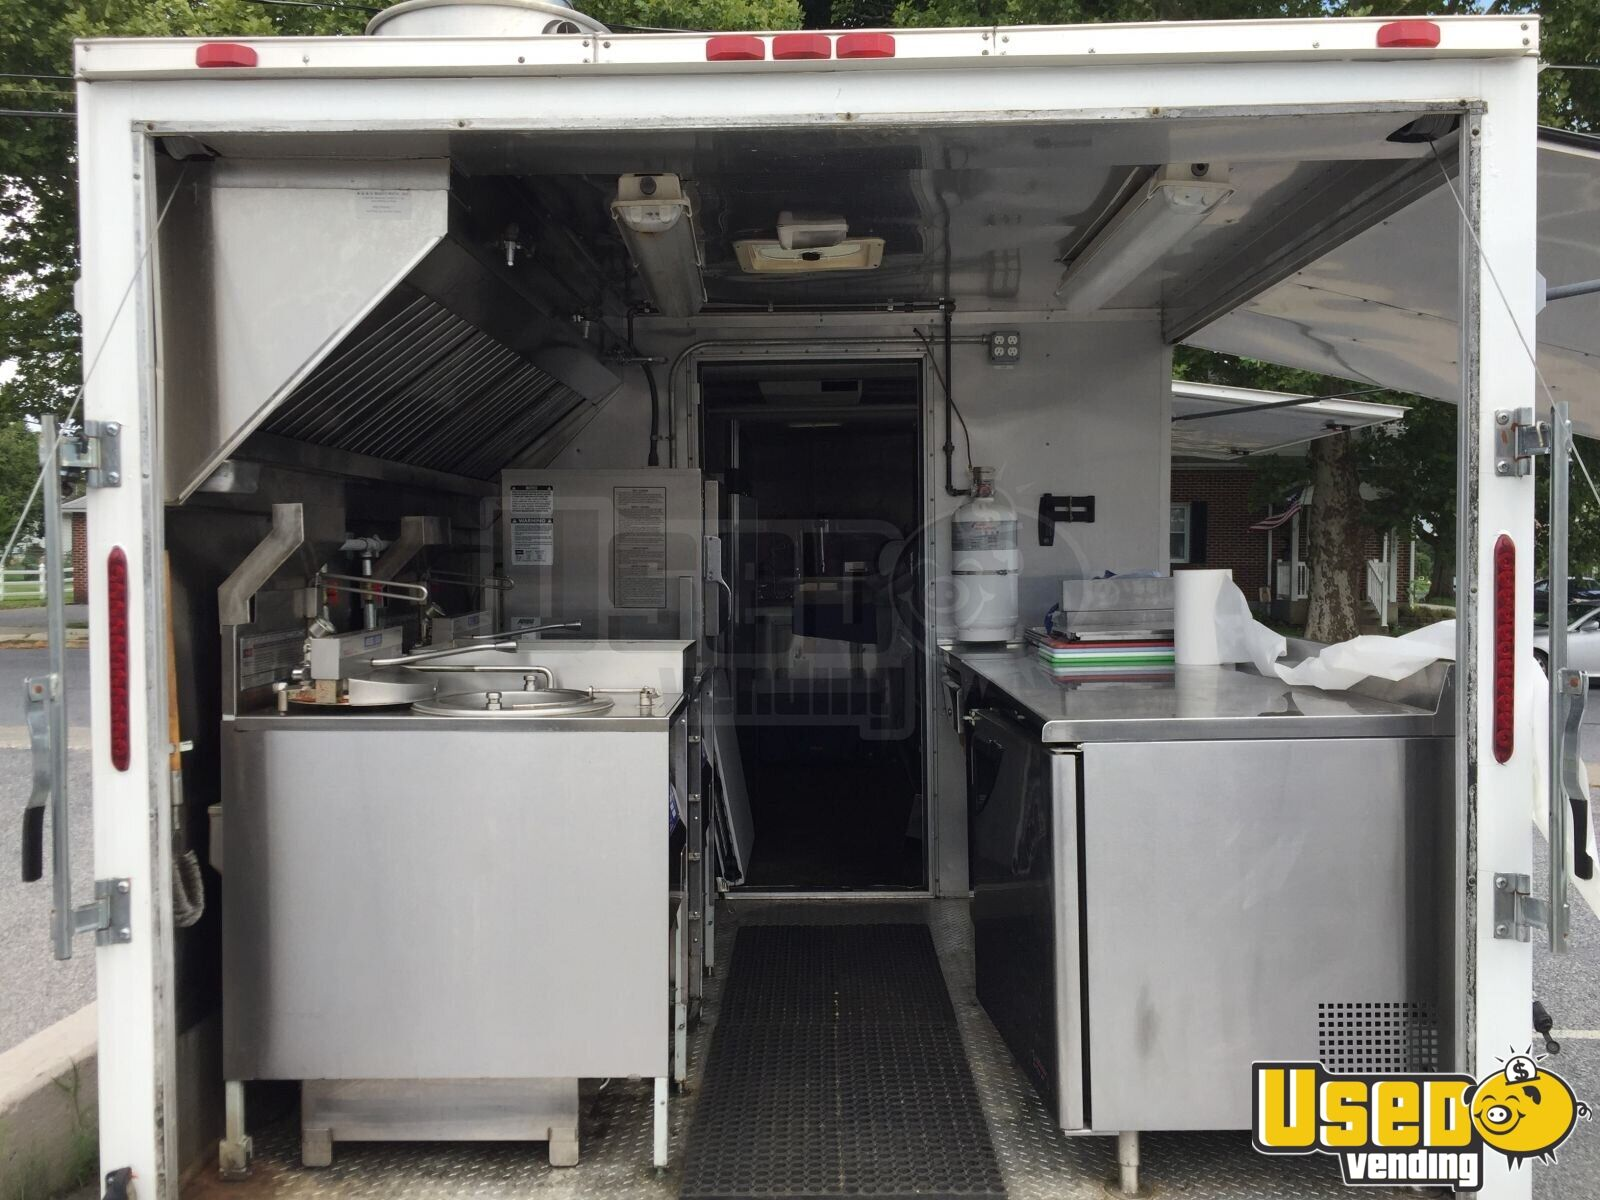 2012 Food Concession Trailer Kitchen Food Trailer Stainless Steel Wall Covers Pennsylvania for Sale - 4